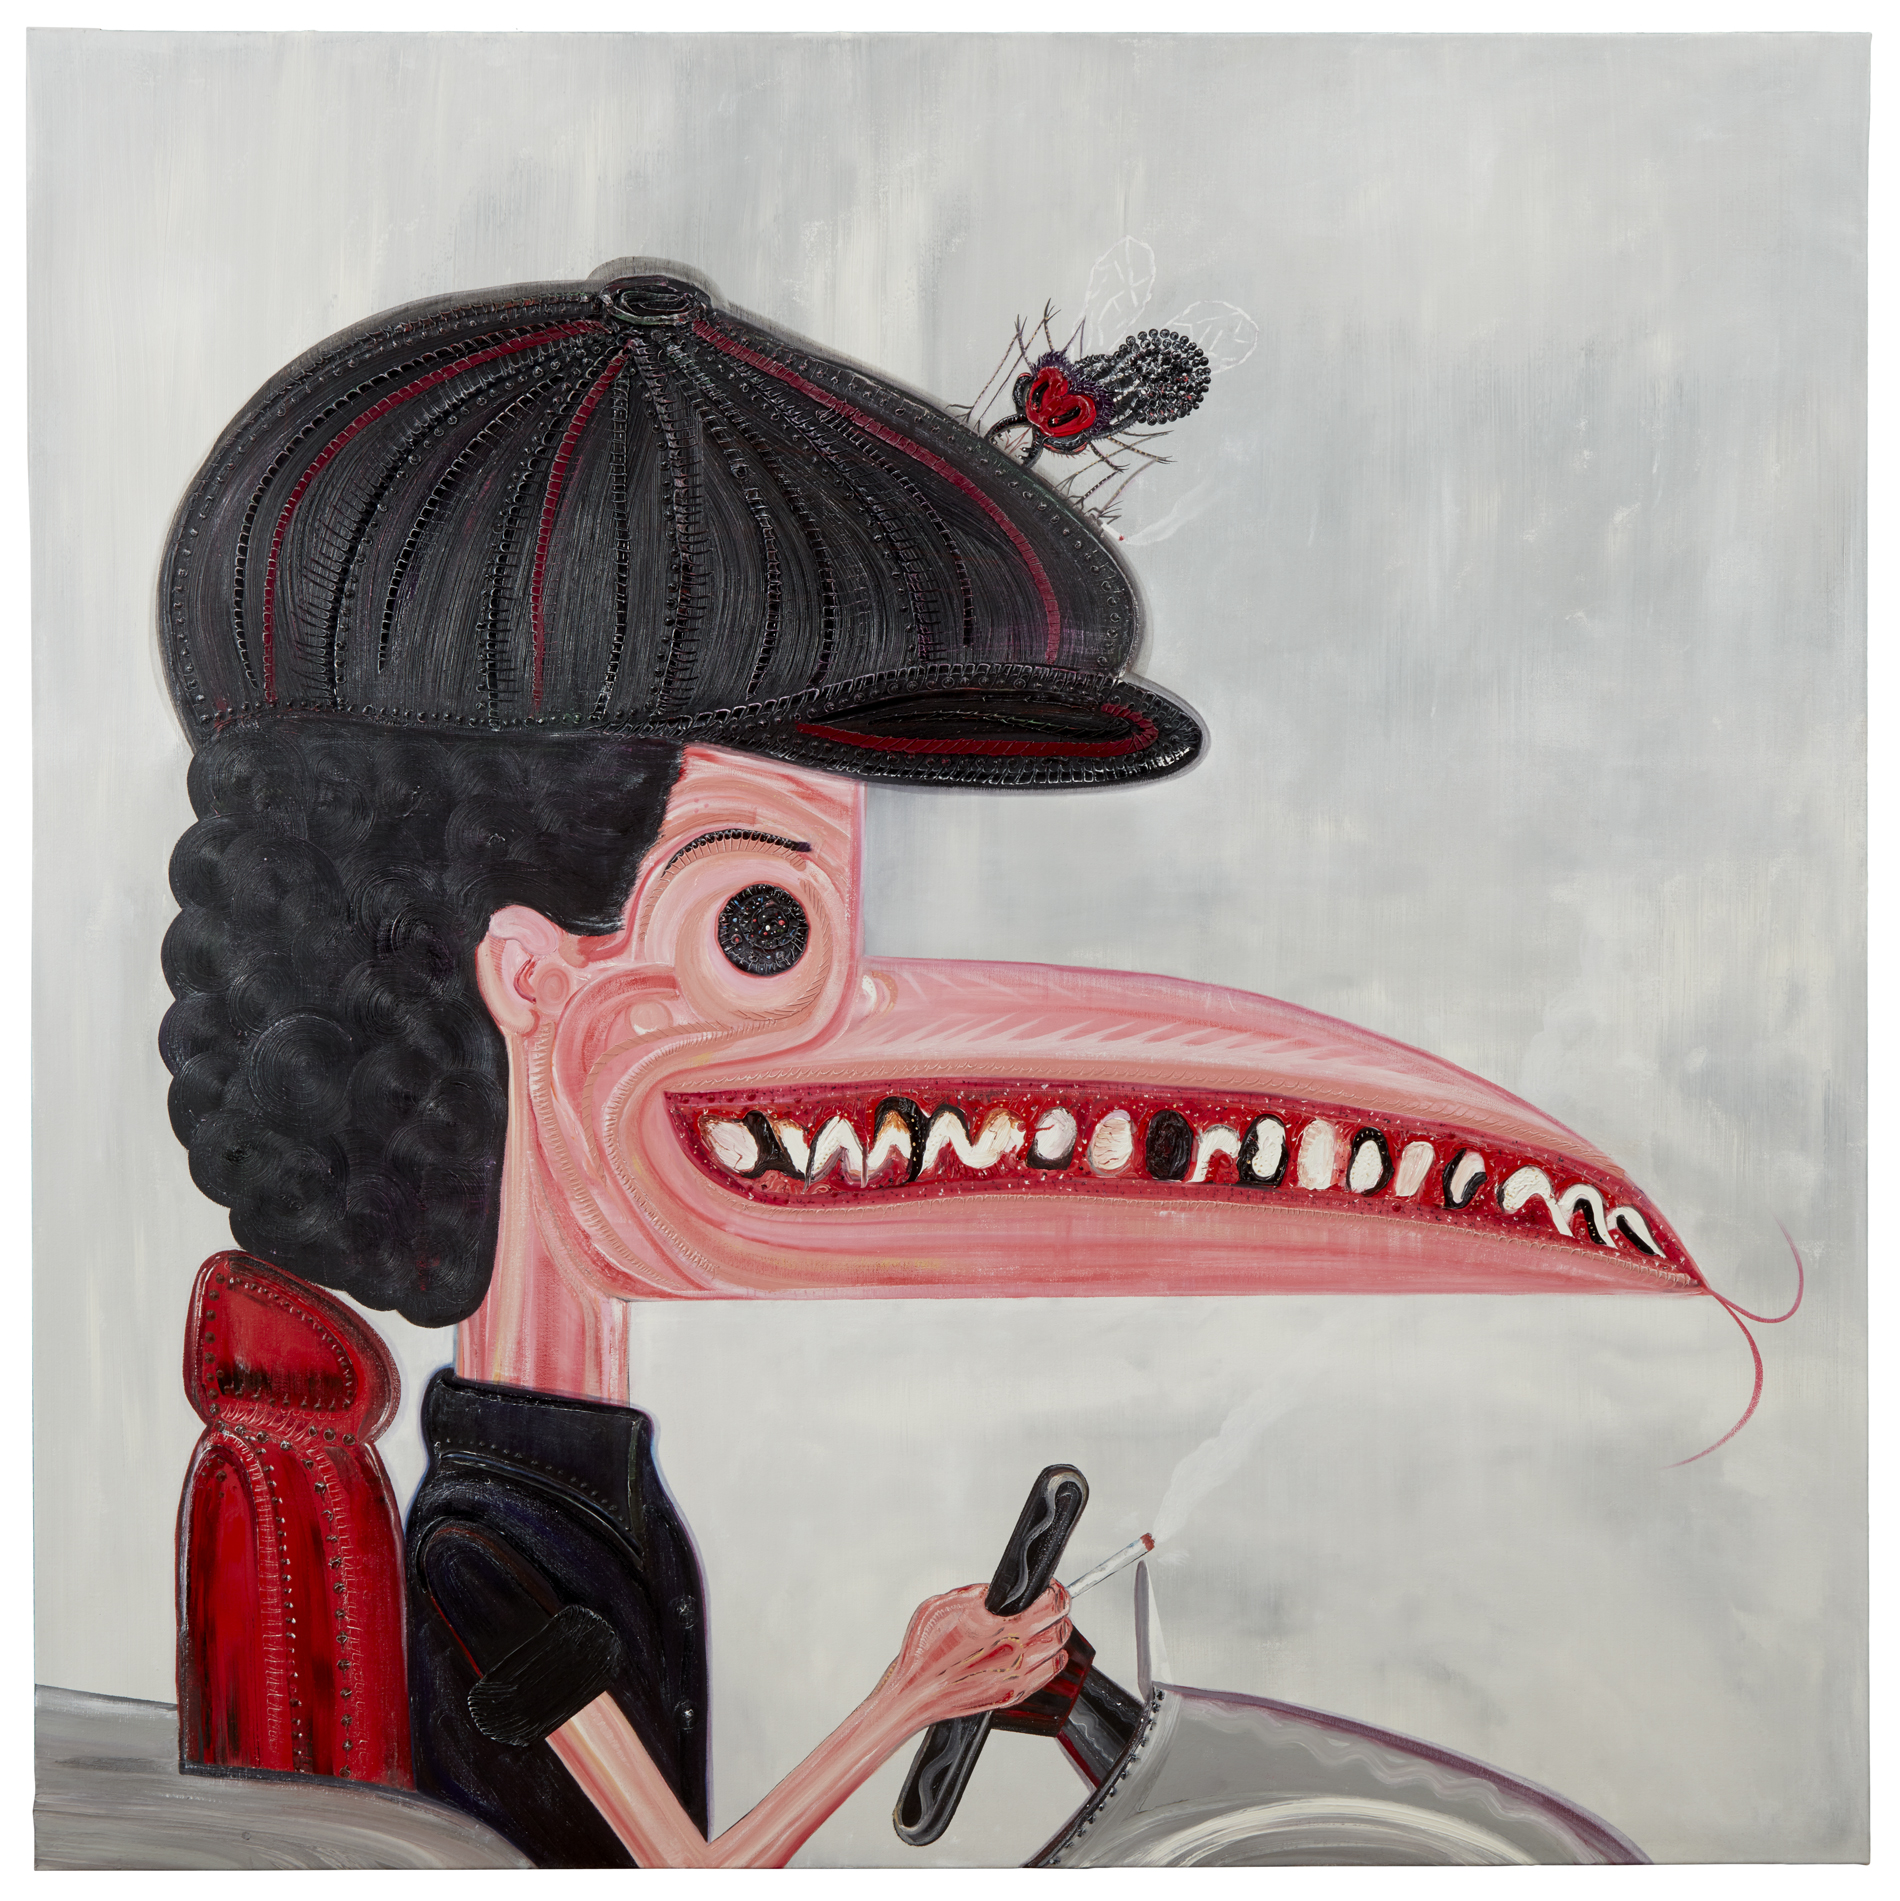 Philip Guston Cars. Brian Johnson Portrait, Abdul Vas. AC/DC Fly On The Wall, 2015. Hypebeast, Saul Bass.. Dazed and confused